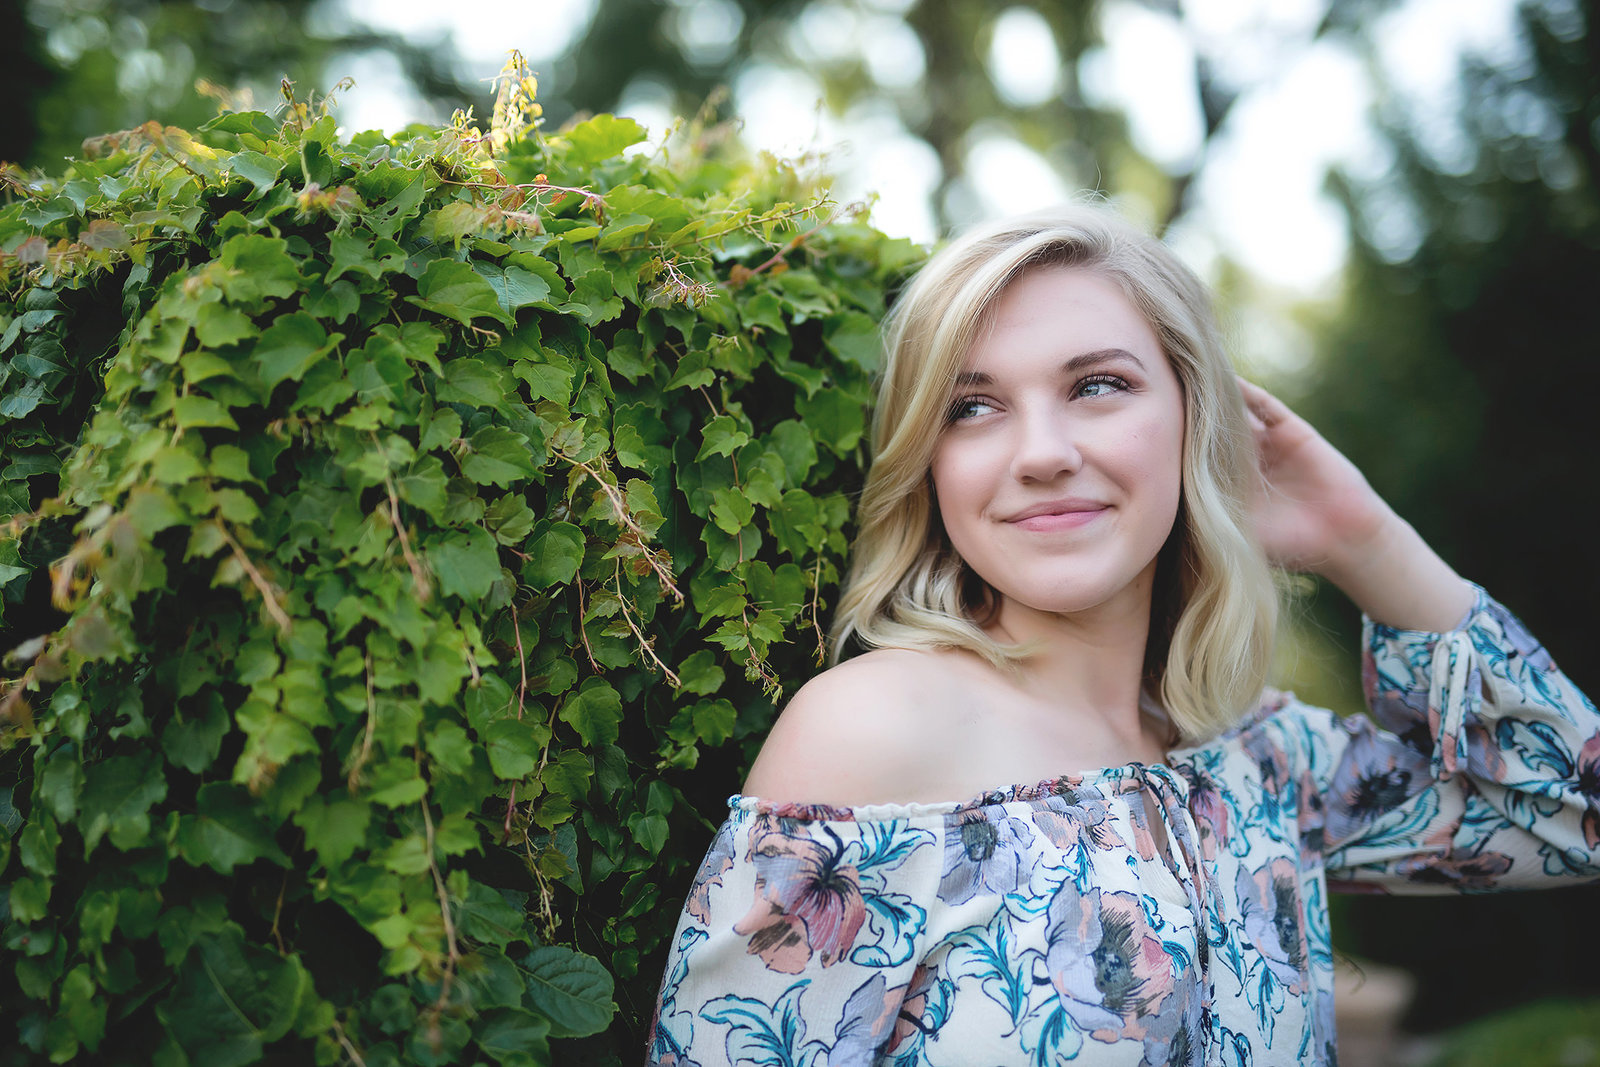 JWP_ShelbyLSenior_07.29.18__0321